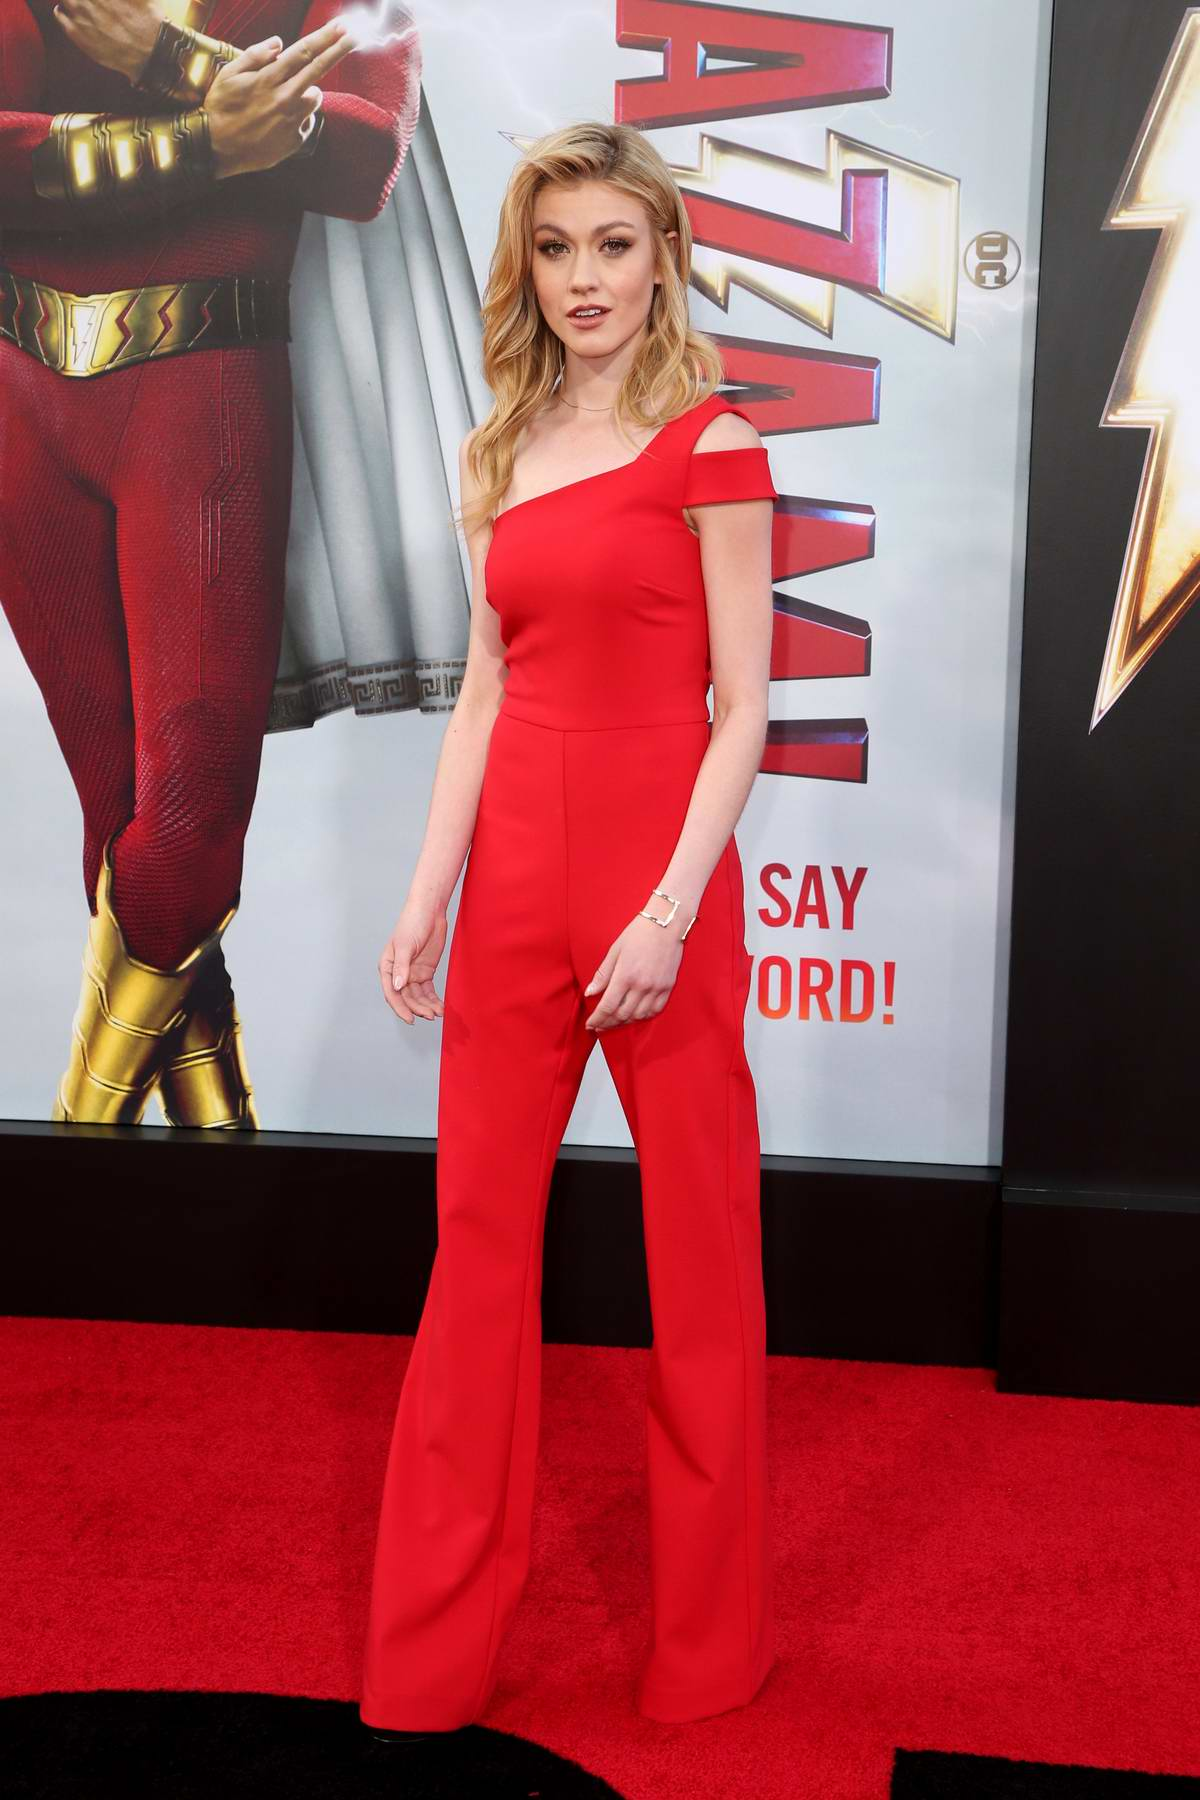 Katherine McNamara attends Shazam! World Premiere held at the TCL Chinese Theatre in Los Angeles